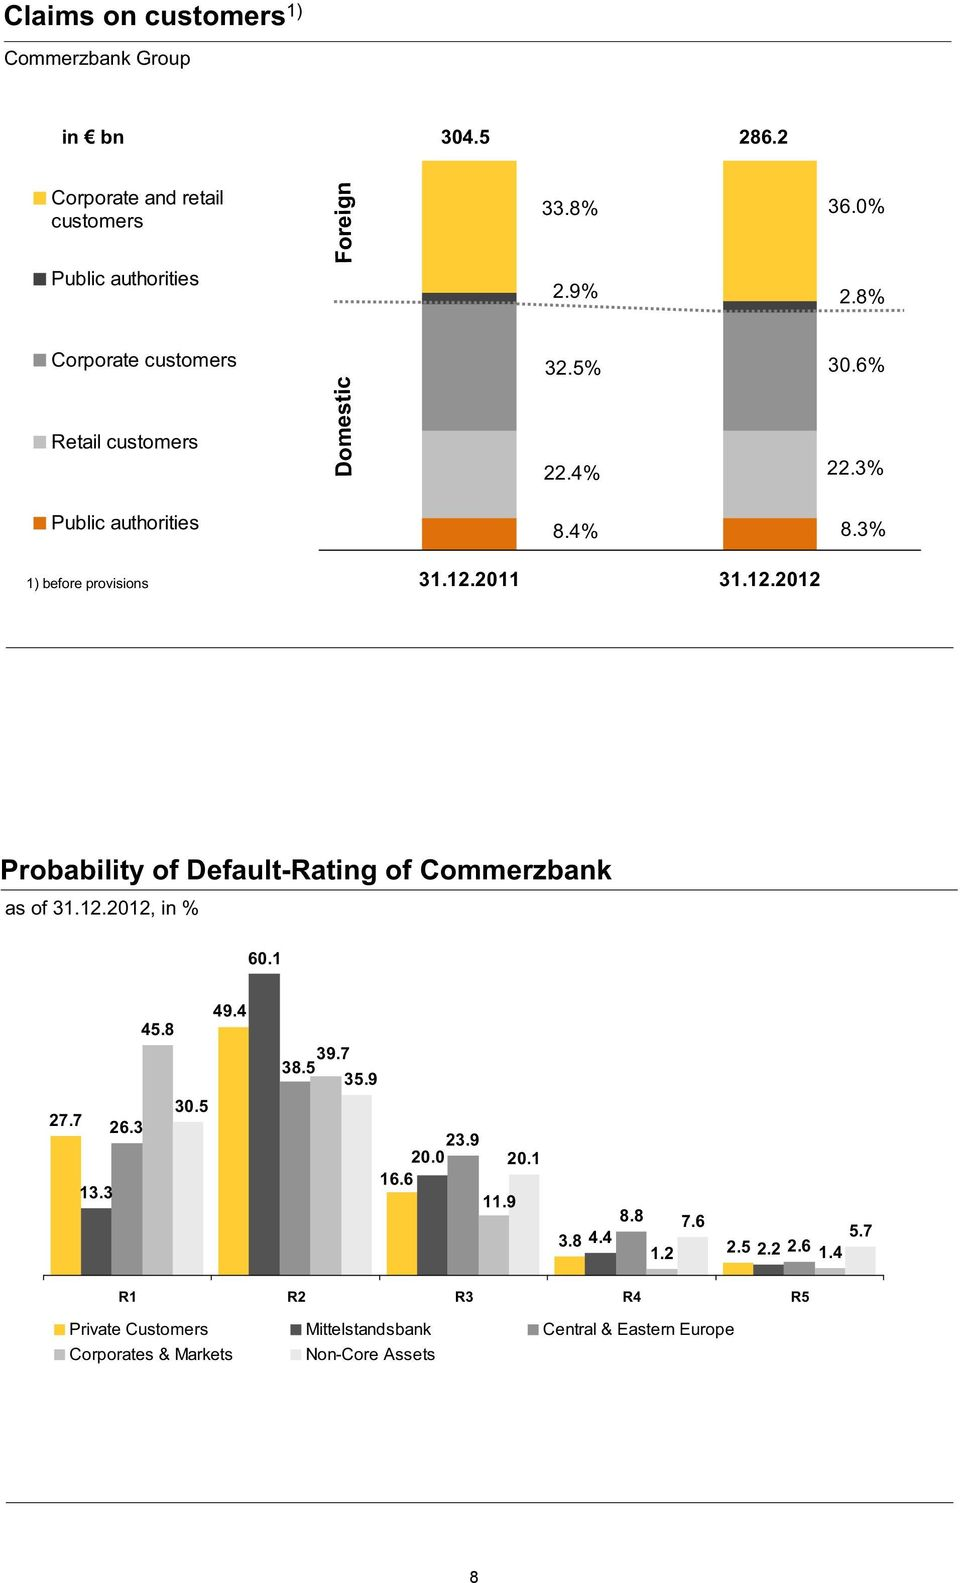 3% Probability of Default-Rating of Commerzbank as of 31.12.2012, in % 60.1 49.4 45.8 30.5 27.7 26.3 13.3 39.7 38.5 35.9 23.9 20.0 20.1 16.6 11.